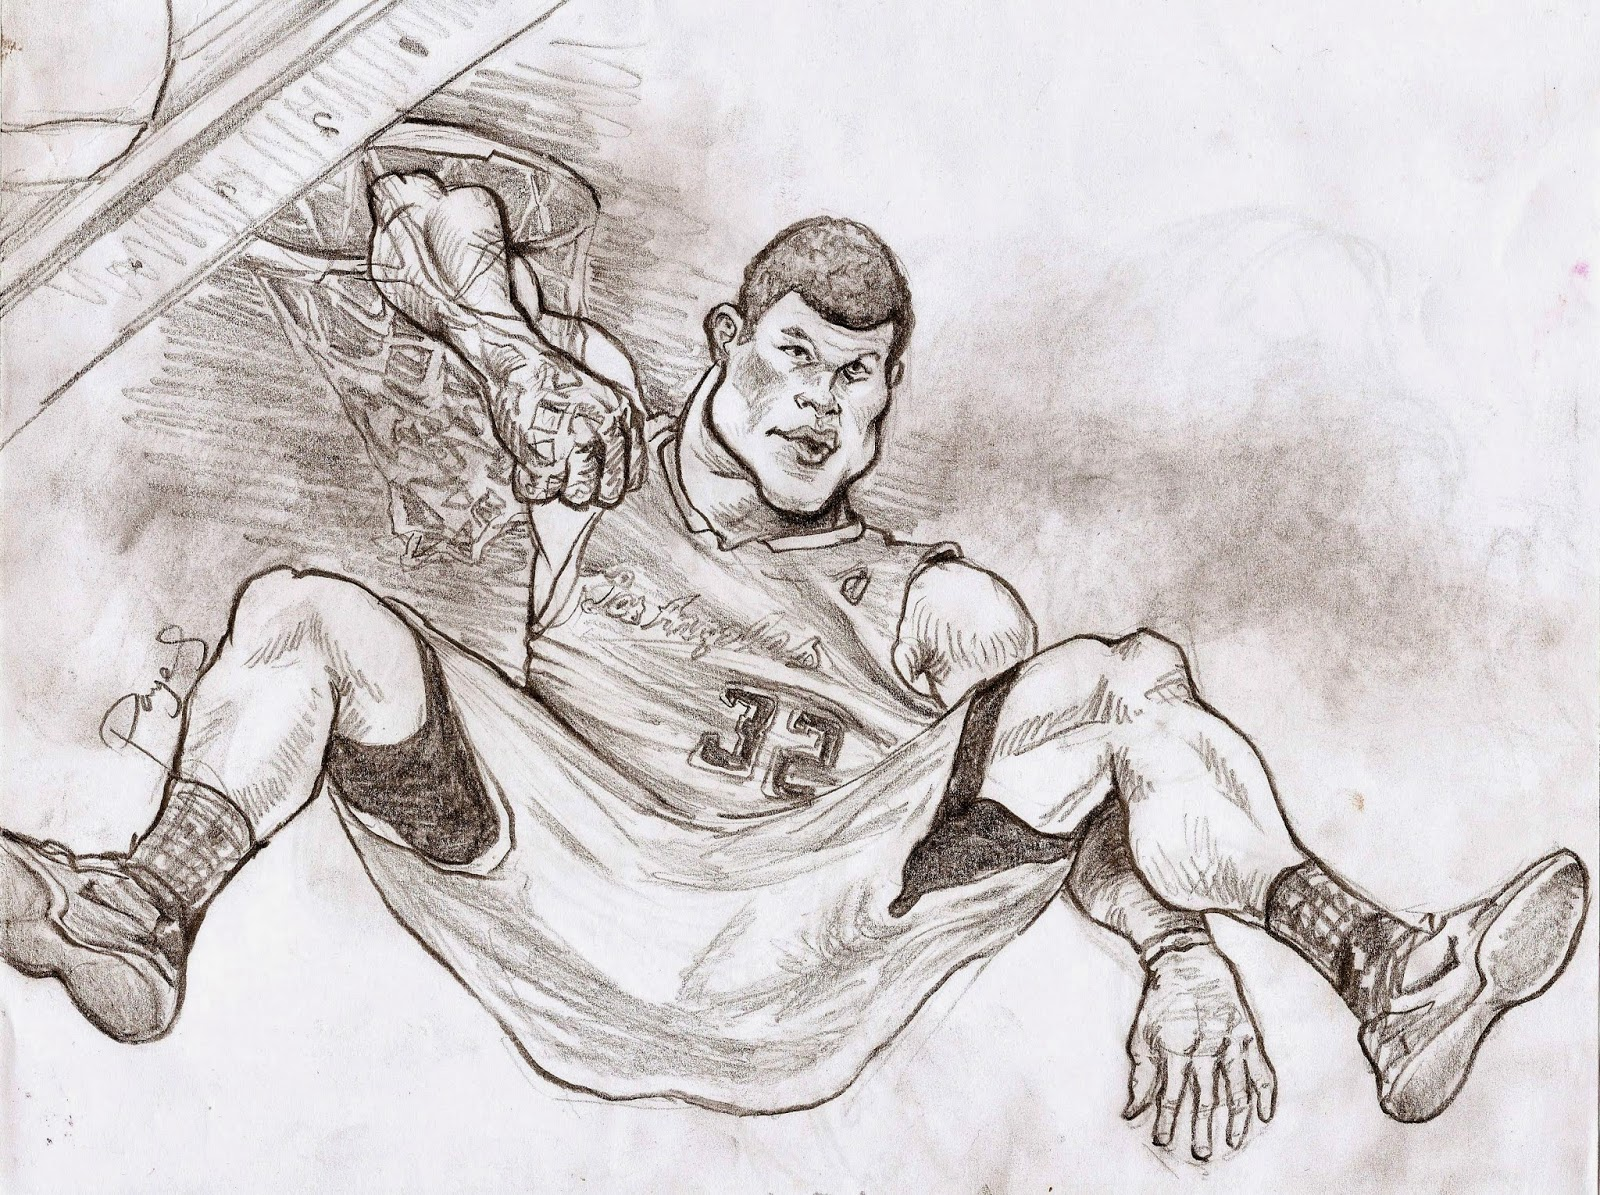 Caricatures, Drawings and Doodles: Nba post